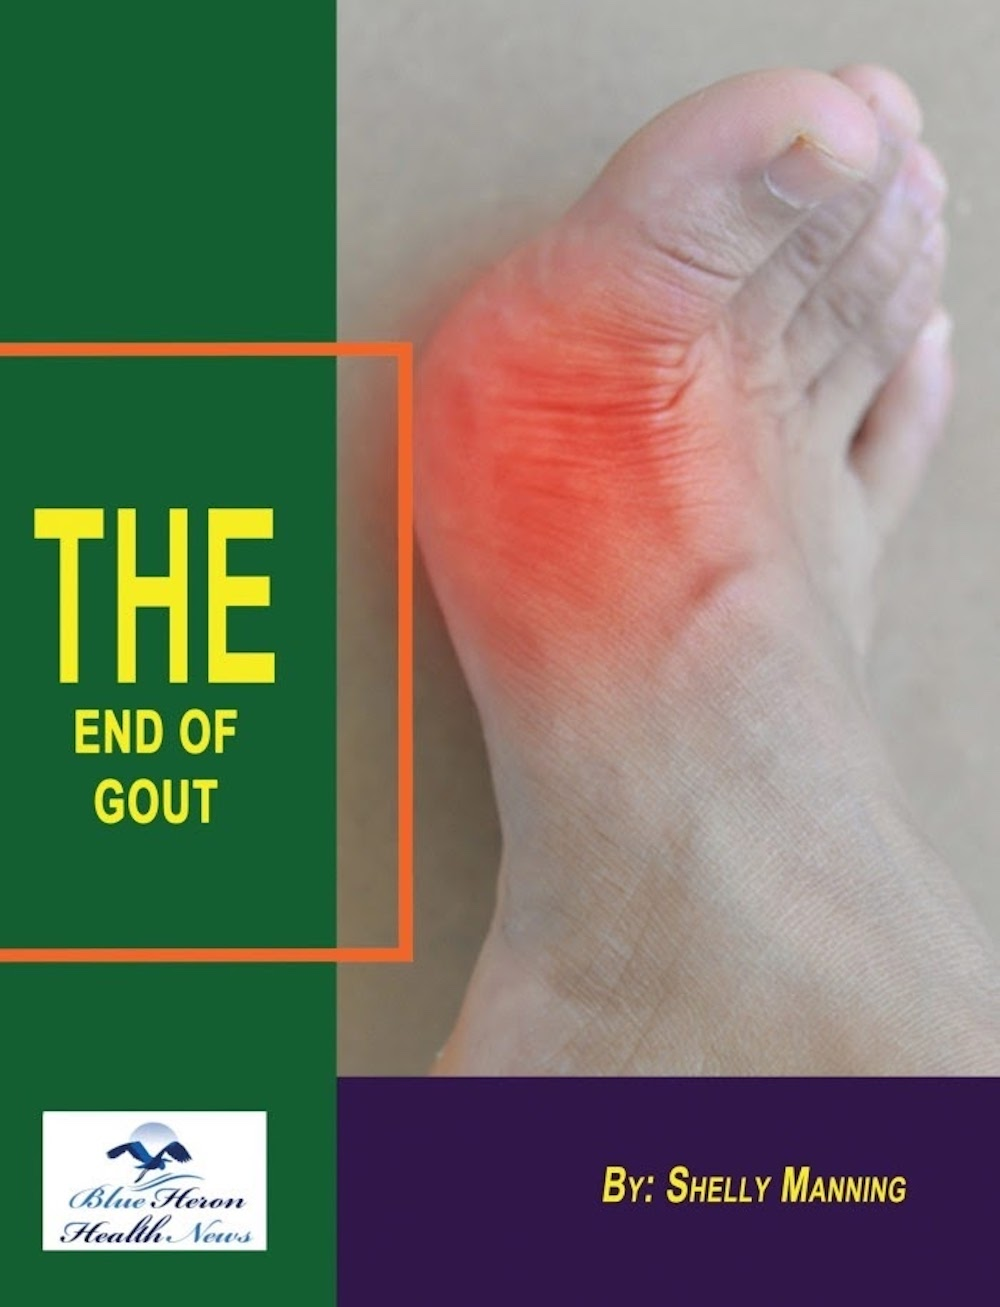 Before starting on the journey to know about The End of Gout, let us first understand what Gout is. Here's everything you need to know.